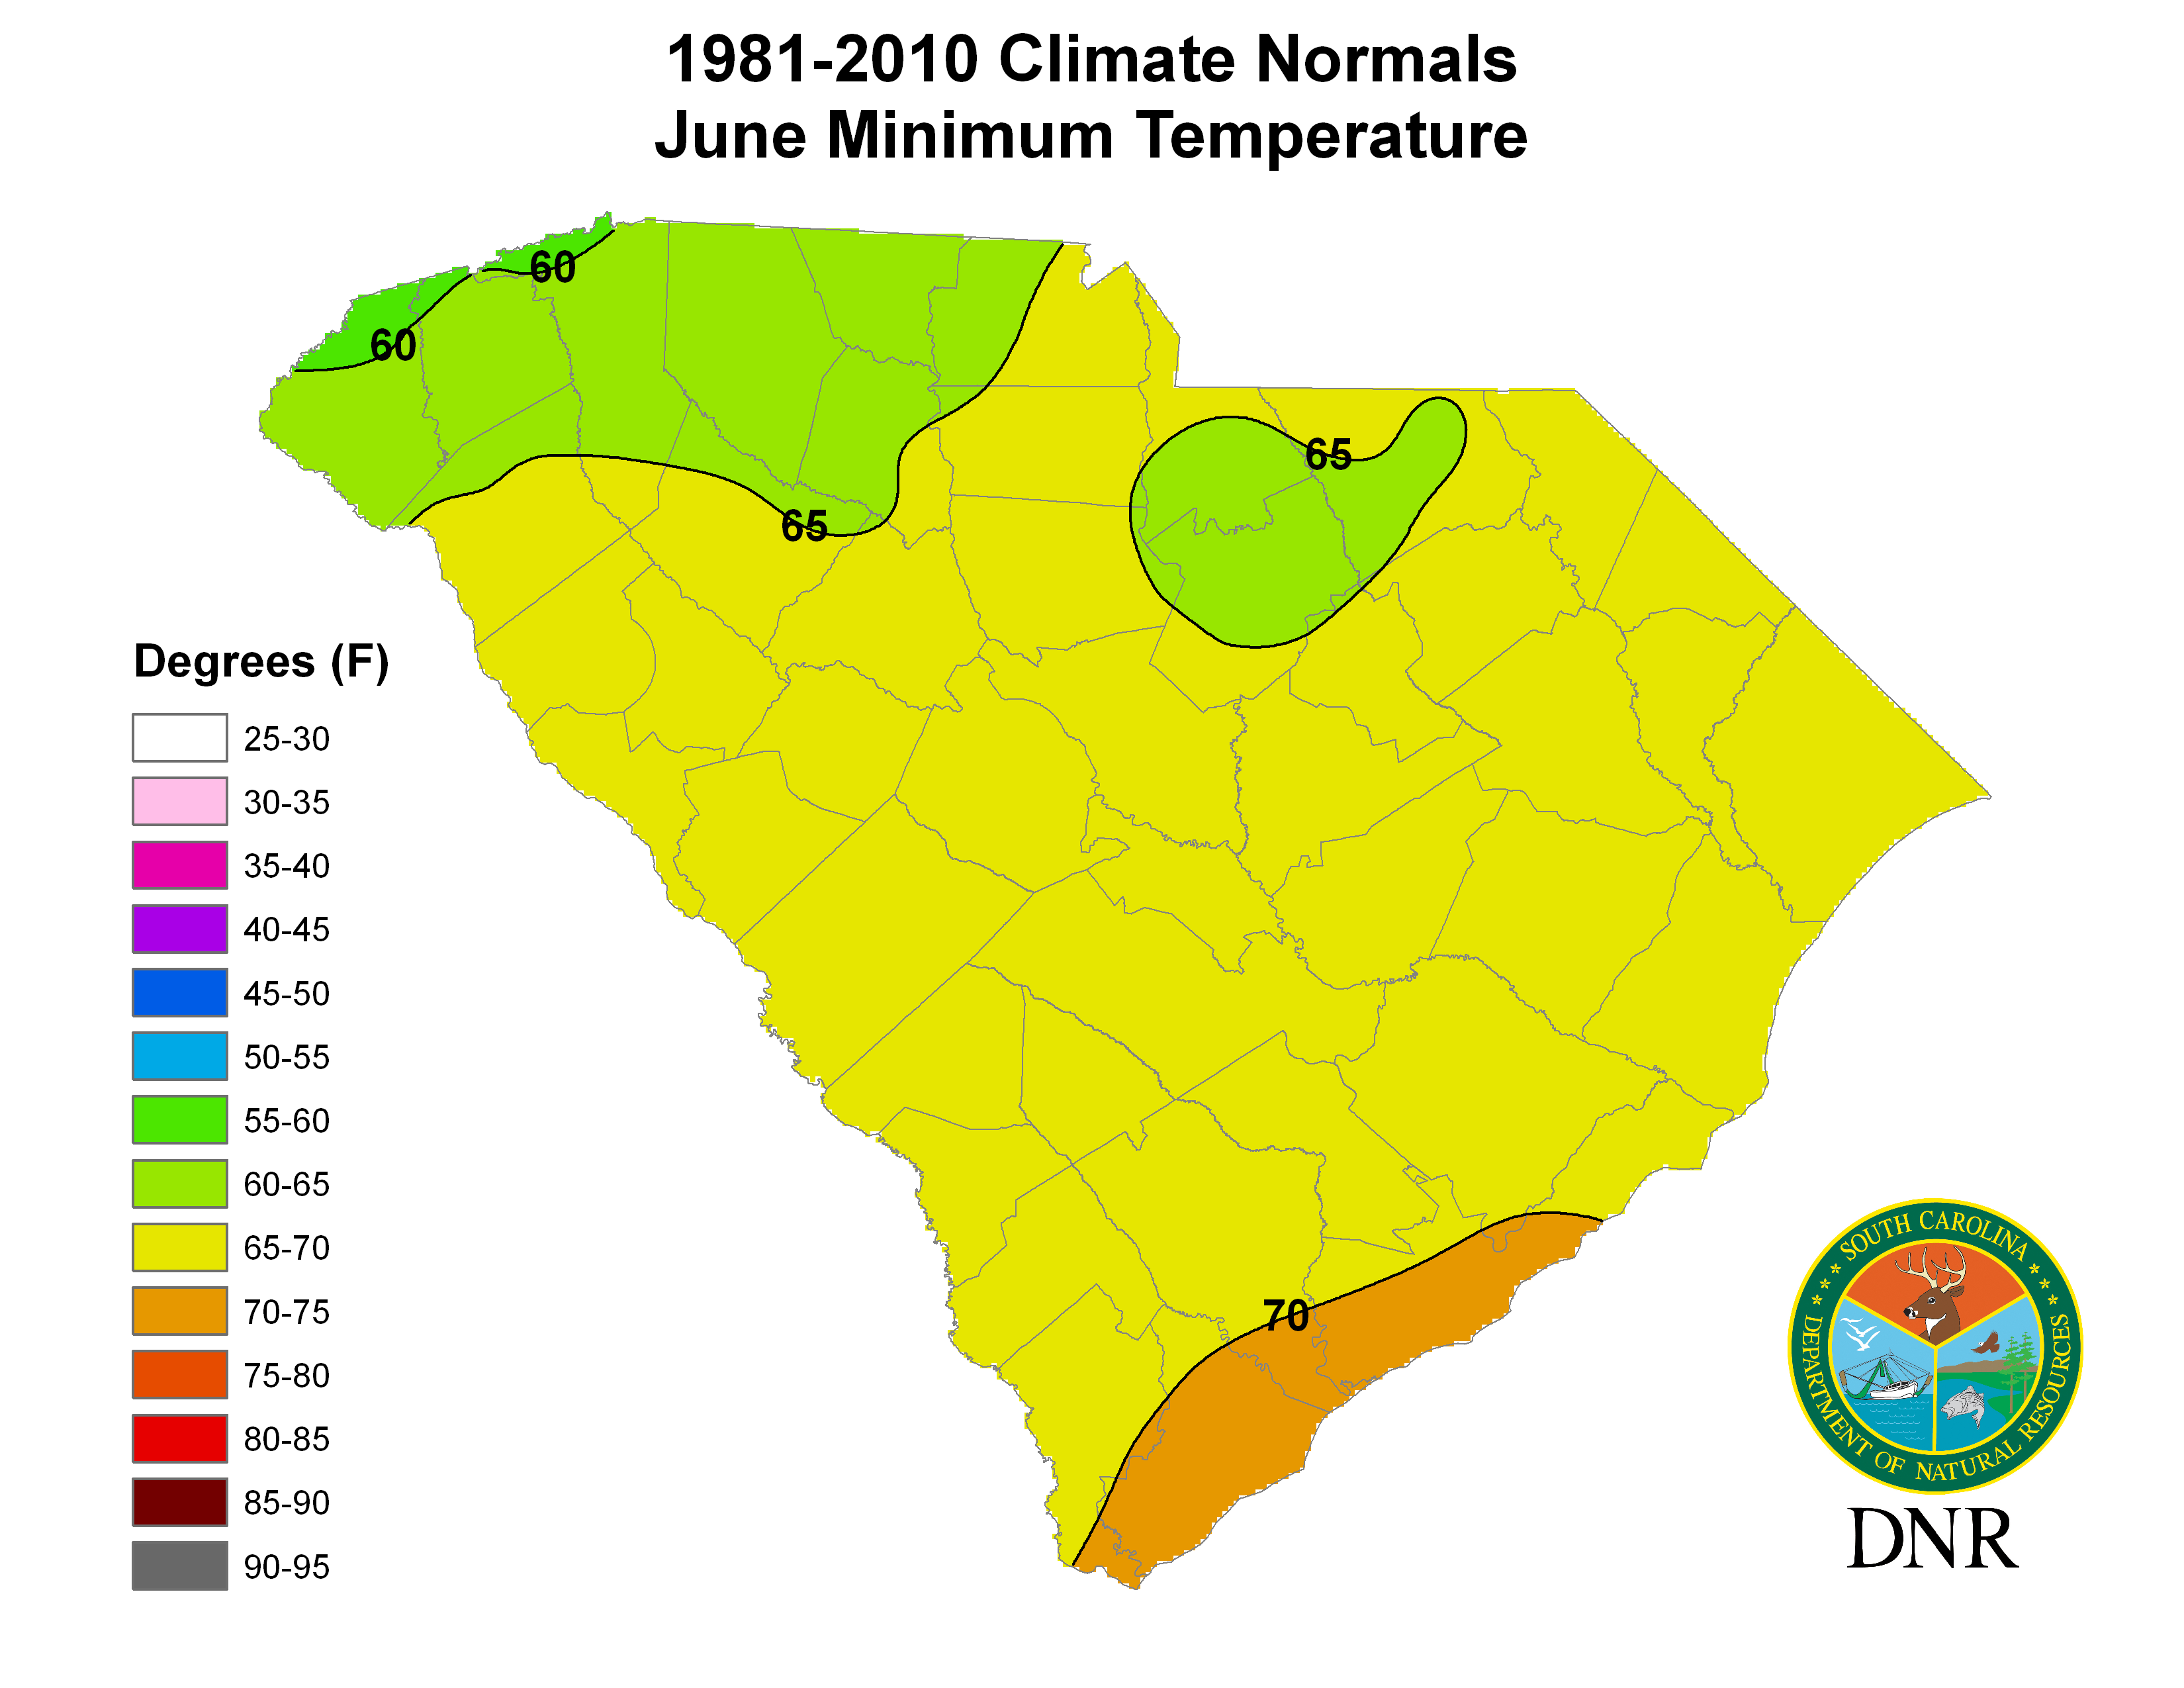 South carolina state climatology office t min gumiabroncs Image collections